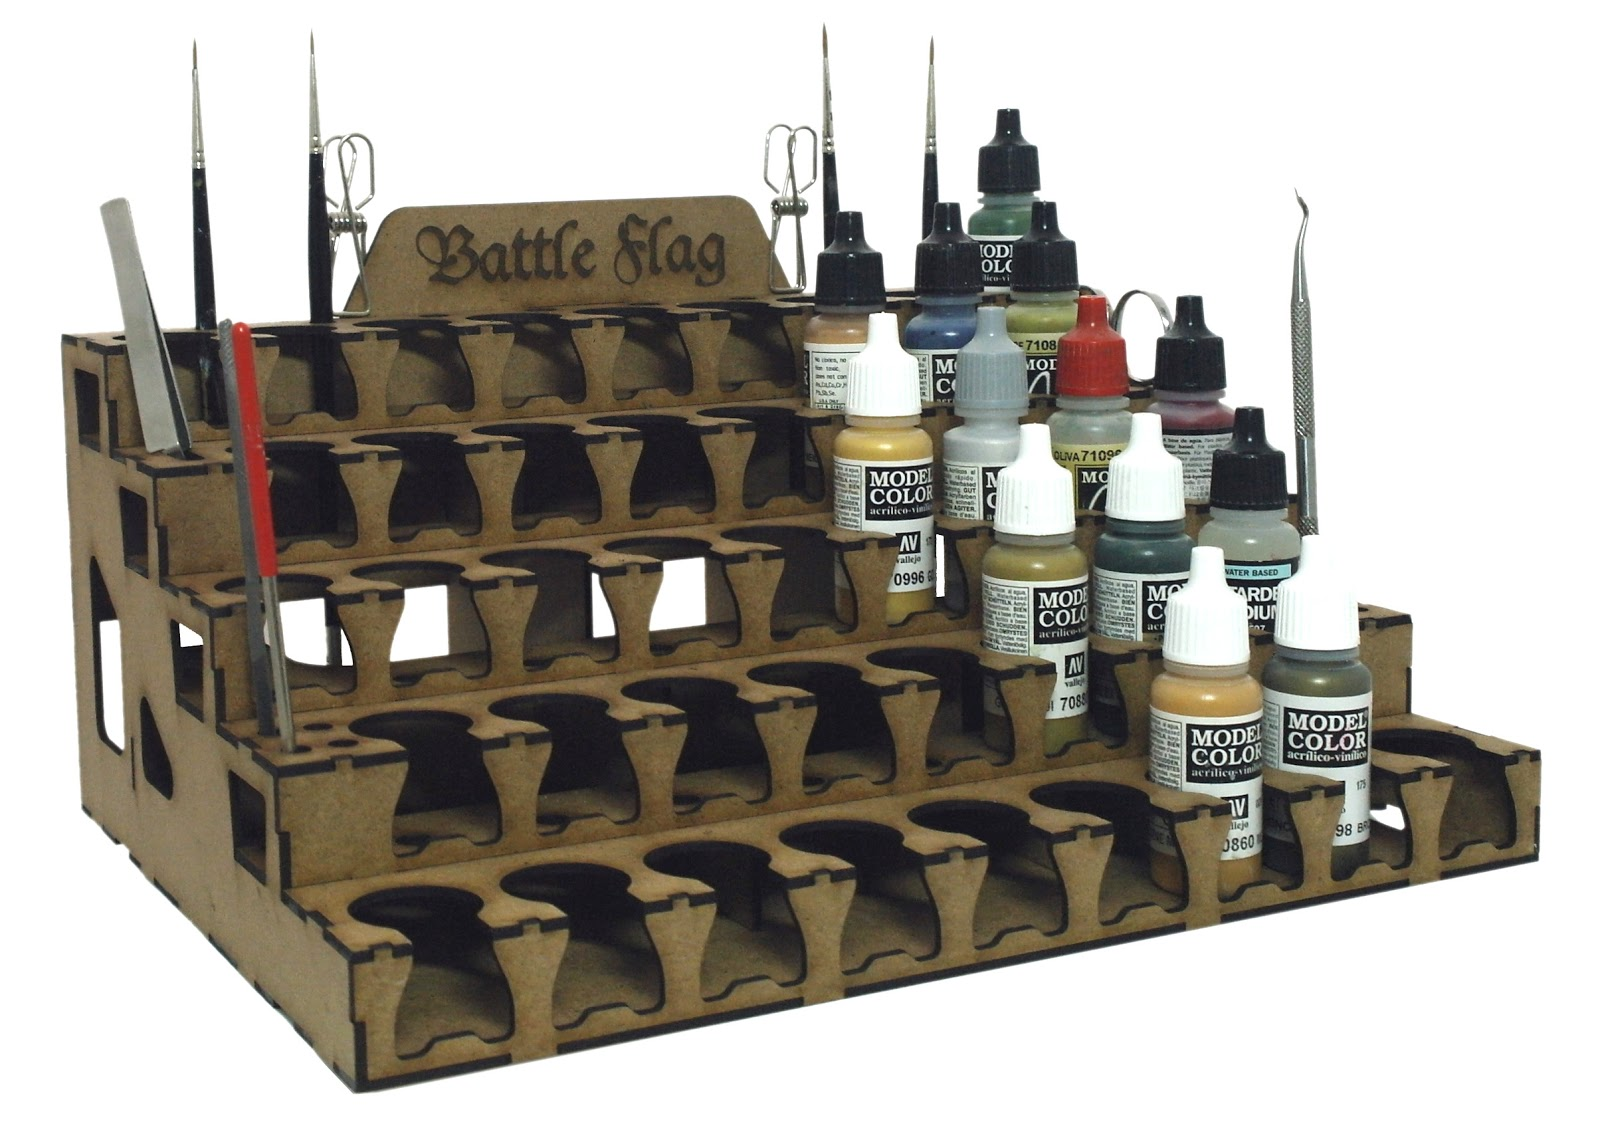 Model Paint Storage Rack Amp Tray System From Battle Flag